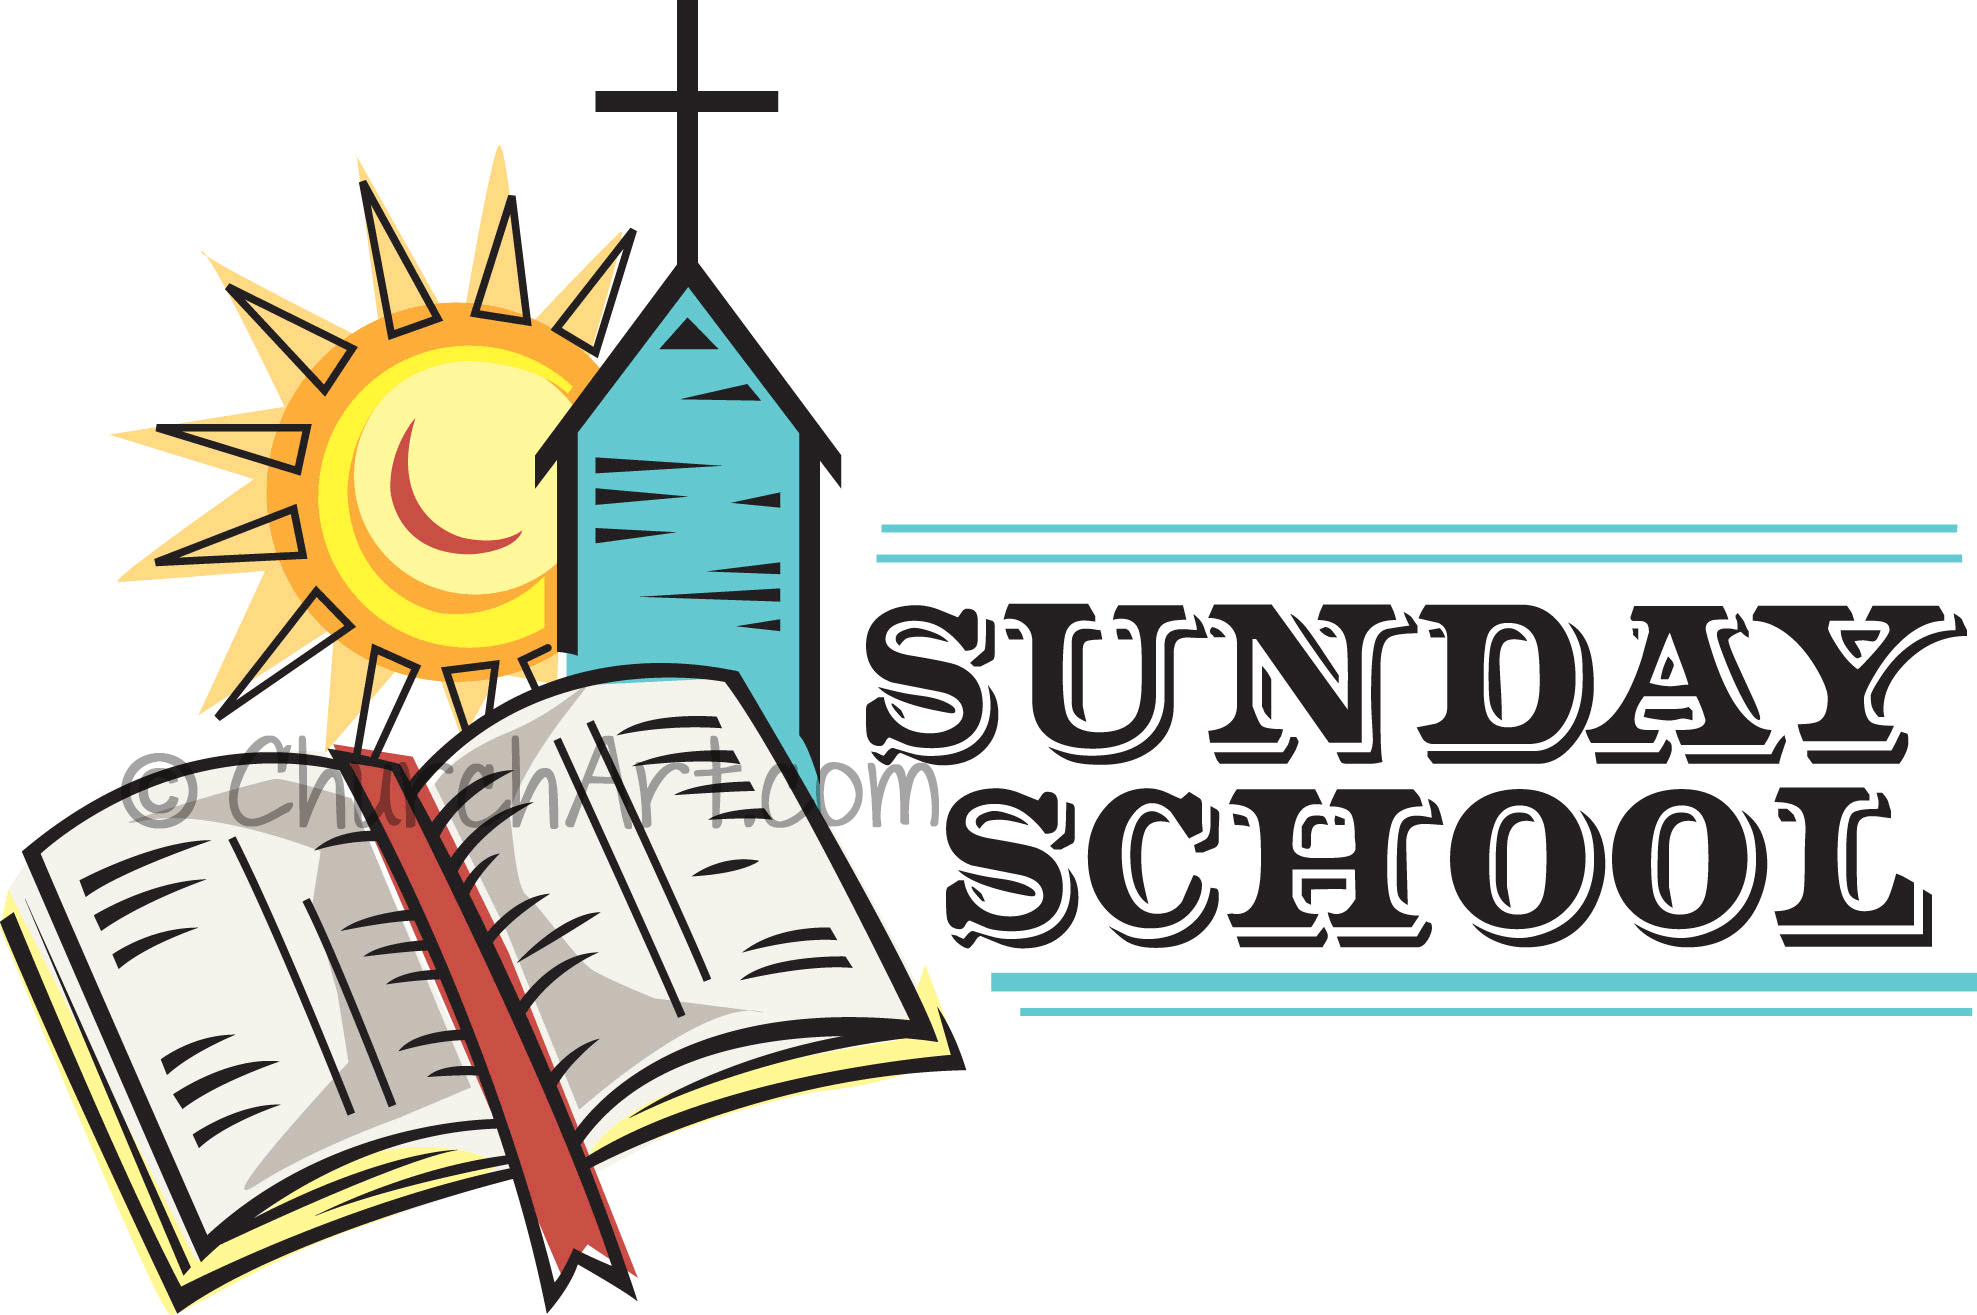 Clip-art image for church Sunday school featuring bible with bookmark, church with cross steeple and sun